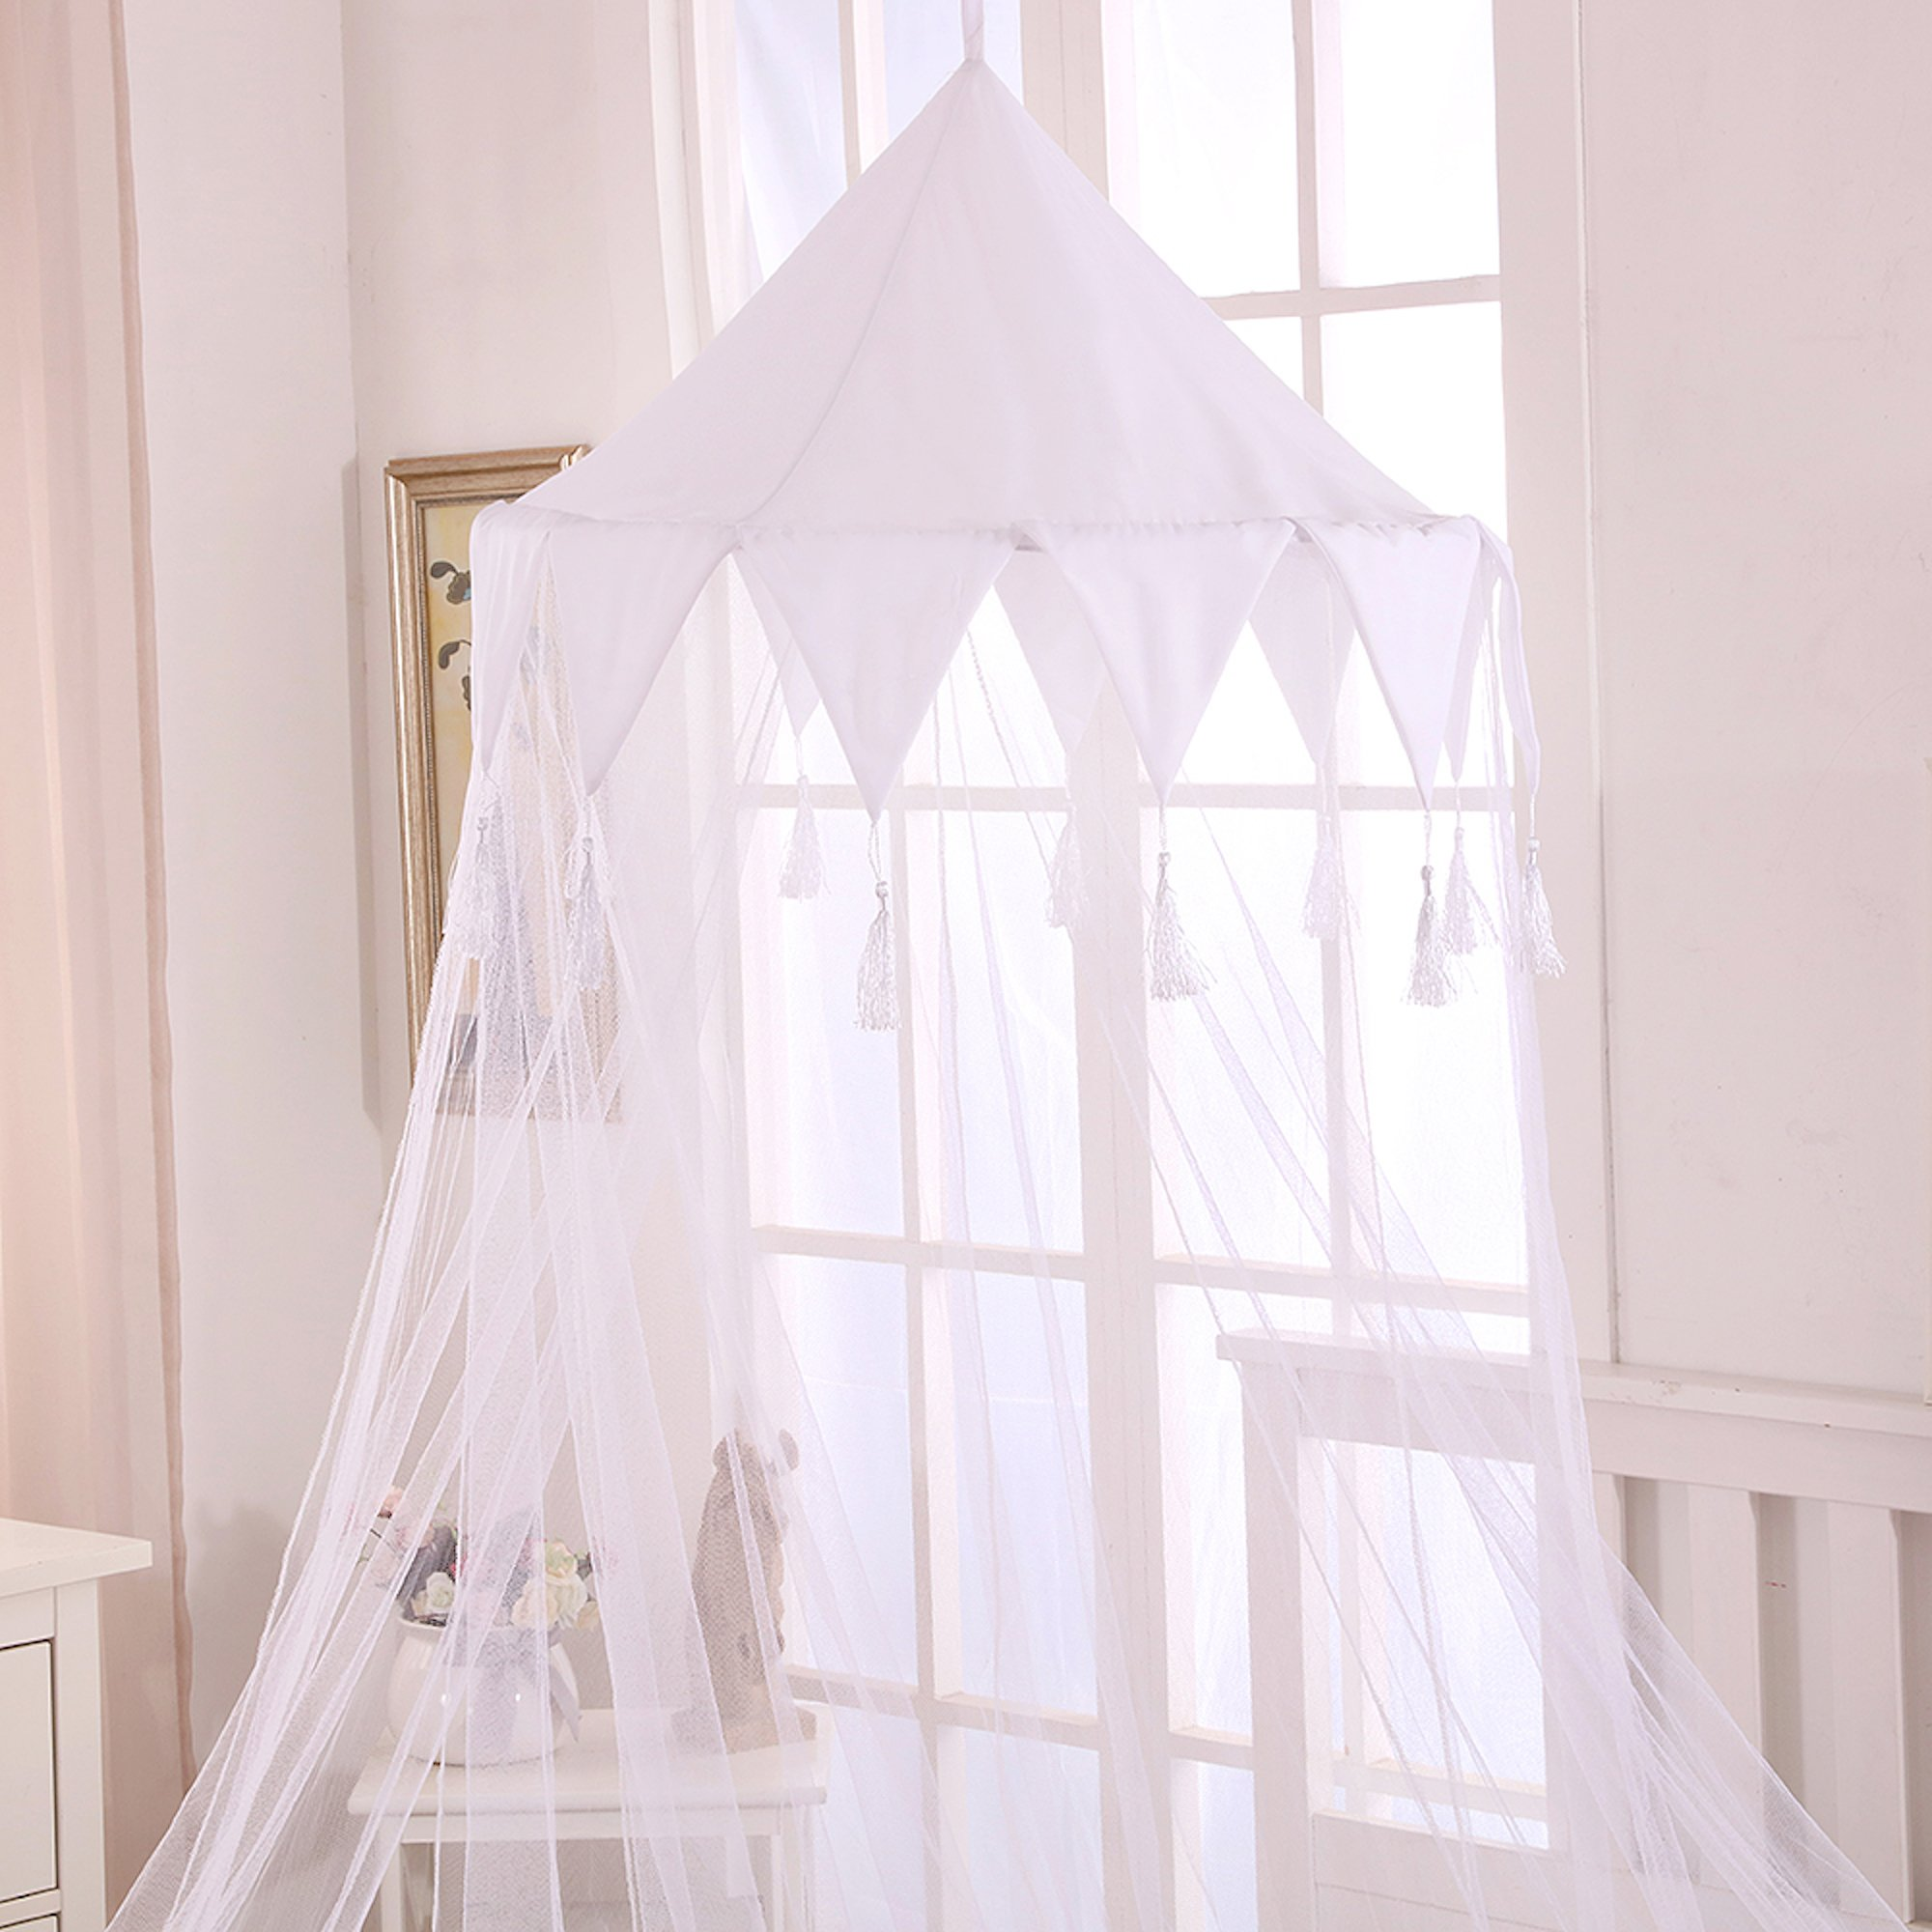 Fantasy Kids Harlequin Kids Collapsible Hoop Sheer Bed Canopy, One Size, White